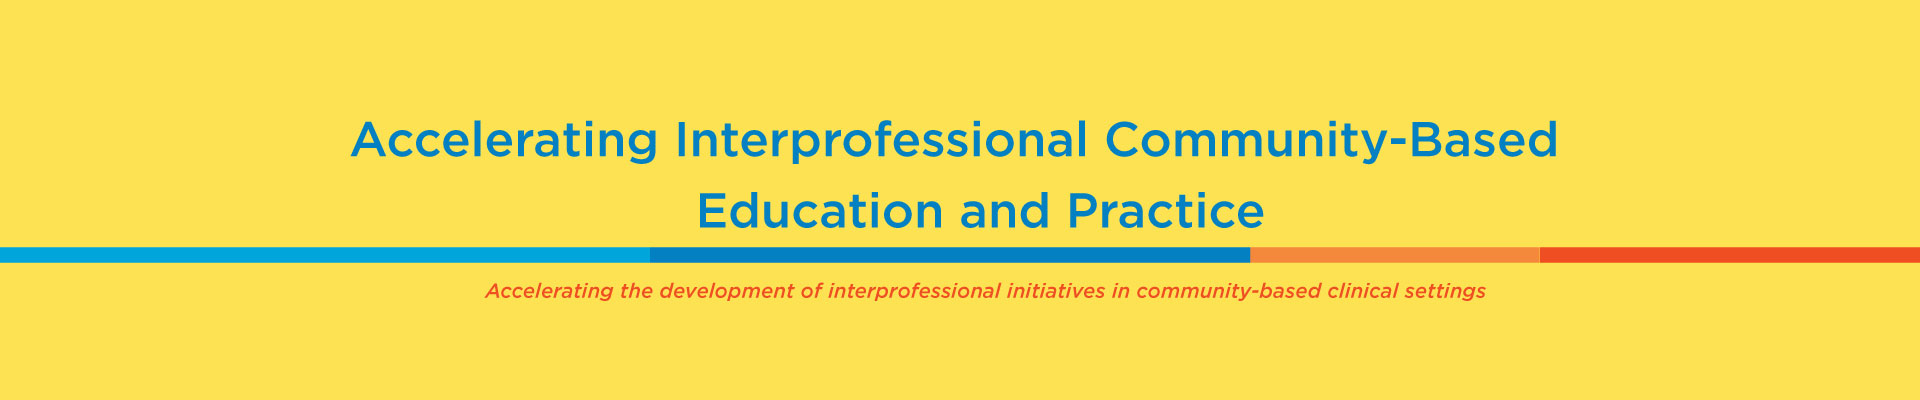 Accelerating Interprofessional Community-Based Education and Practice